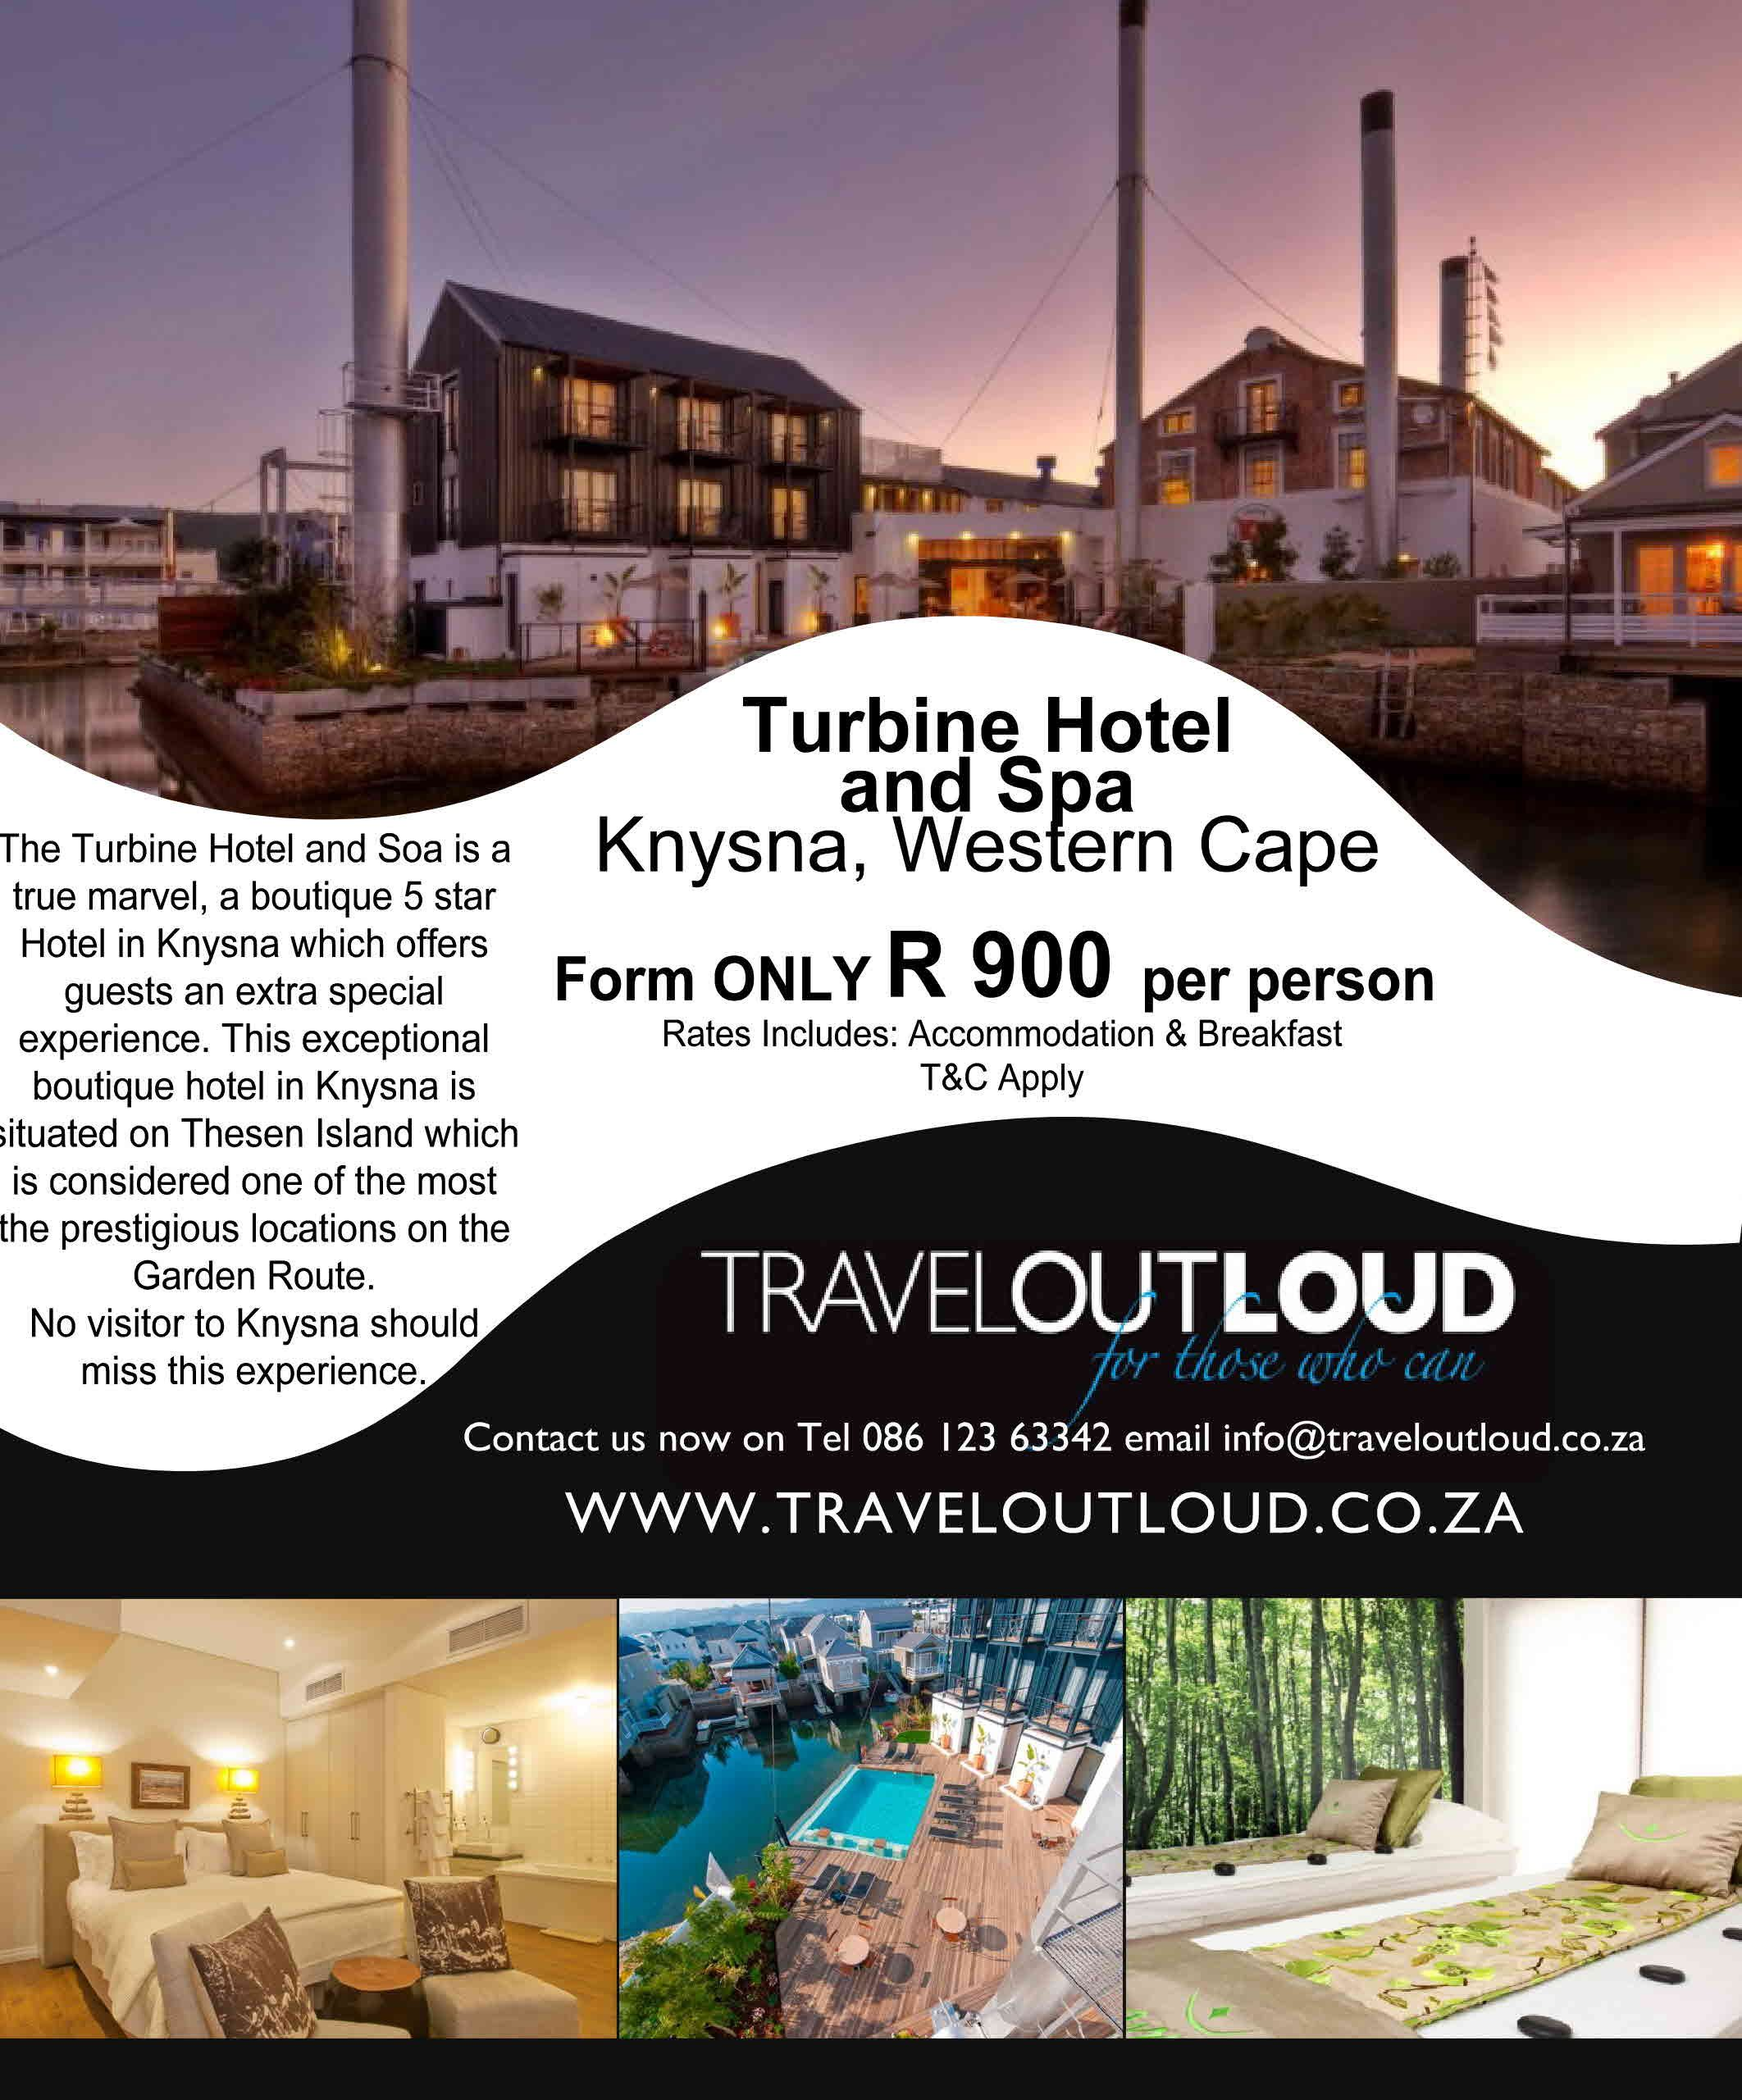 Turbine Hotel and Spa Knysna, Western Cape Form ONLY… R